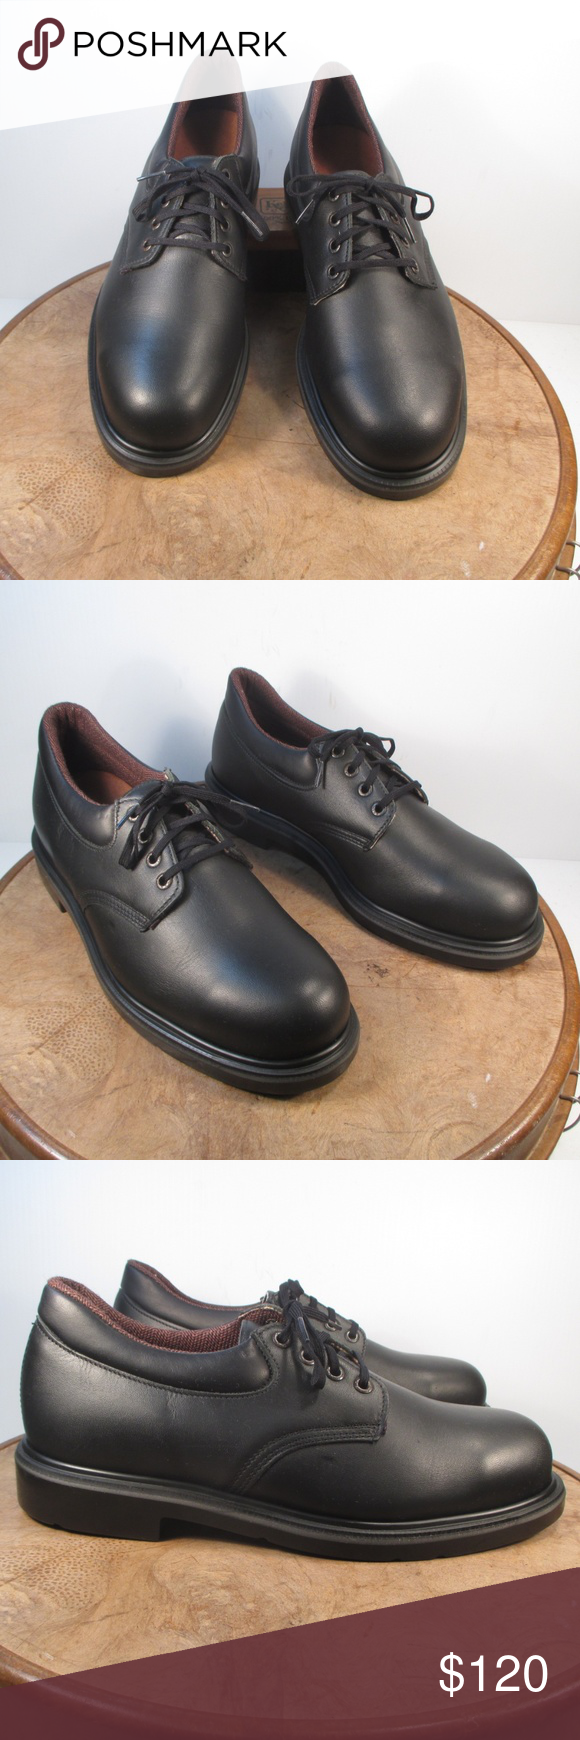 Red Wing 4408 Black Leather Oxford 9 D New without box